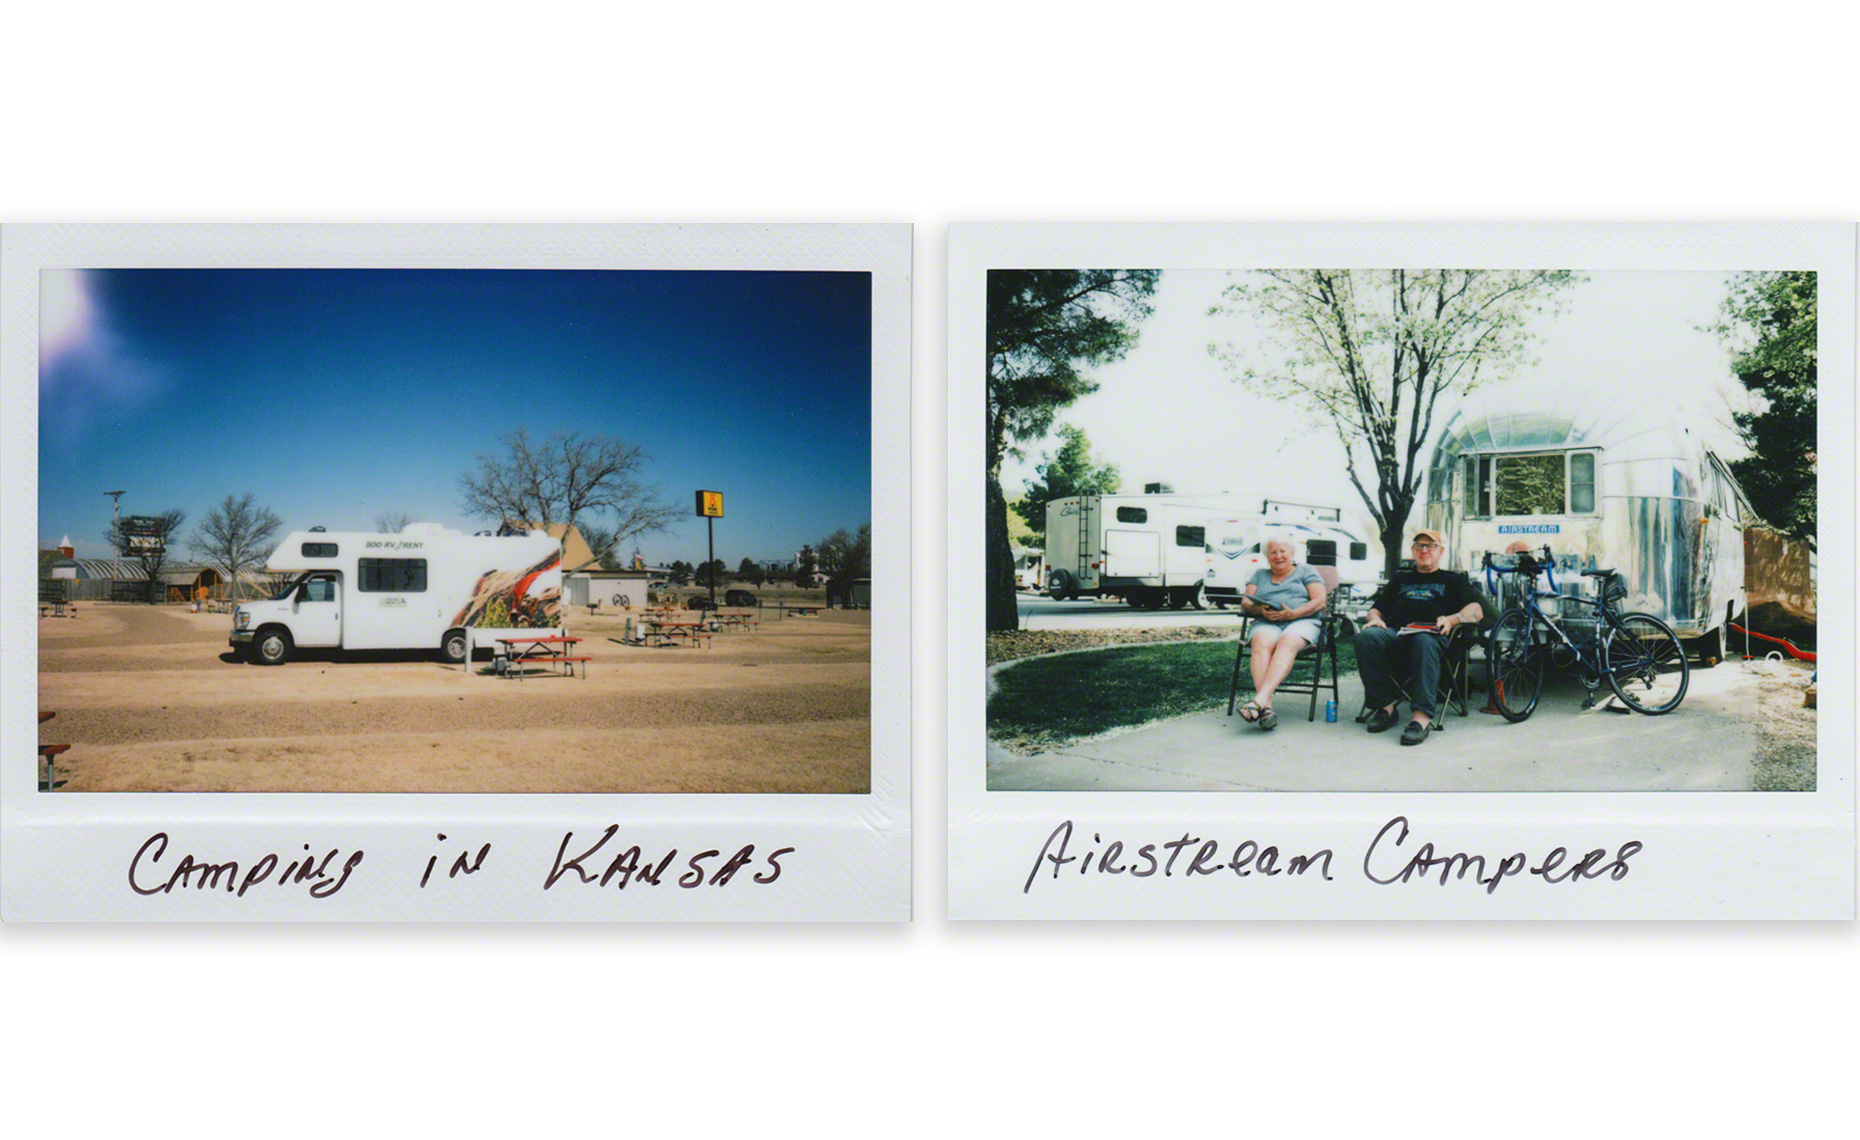 Camping-and-Campers